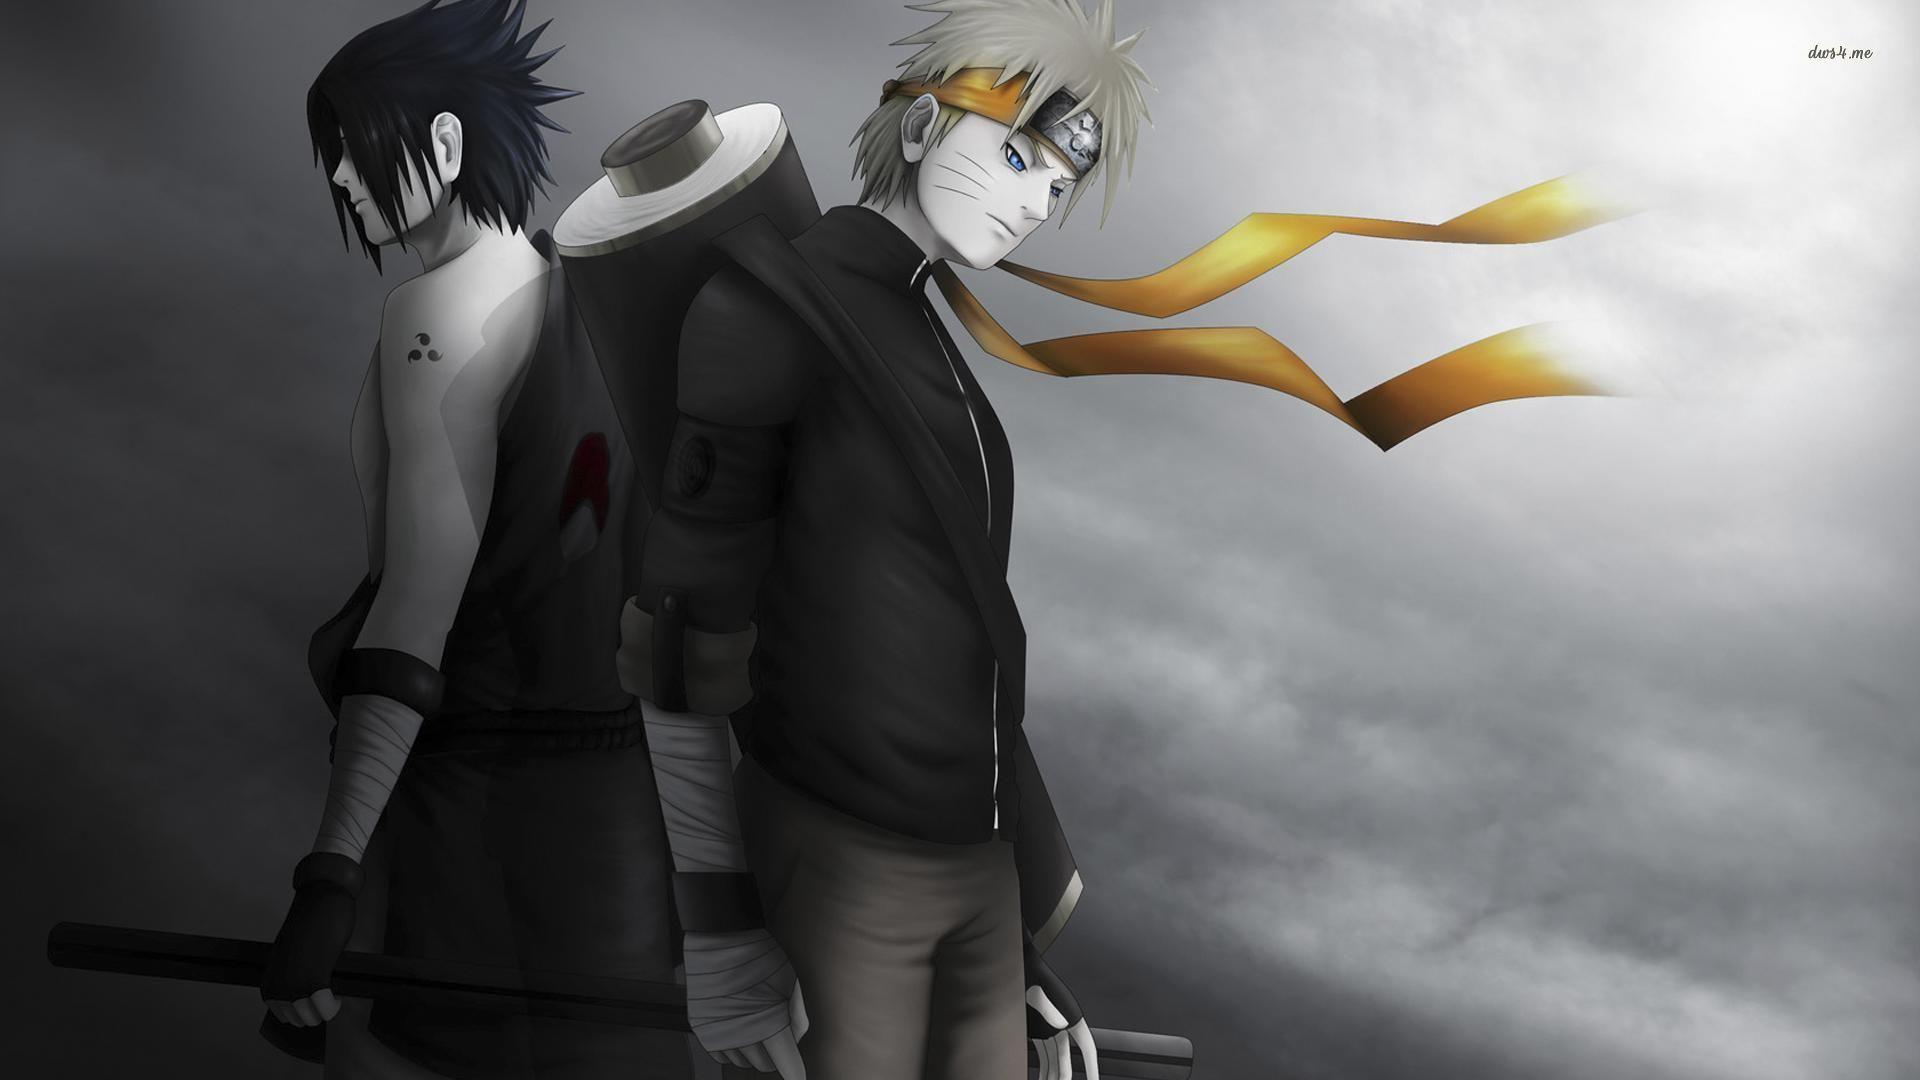 Naruto Uzumaki Wallpapers High Quality | Download Free |Naruto High Quality Wallpaper